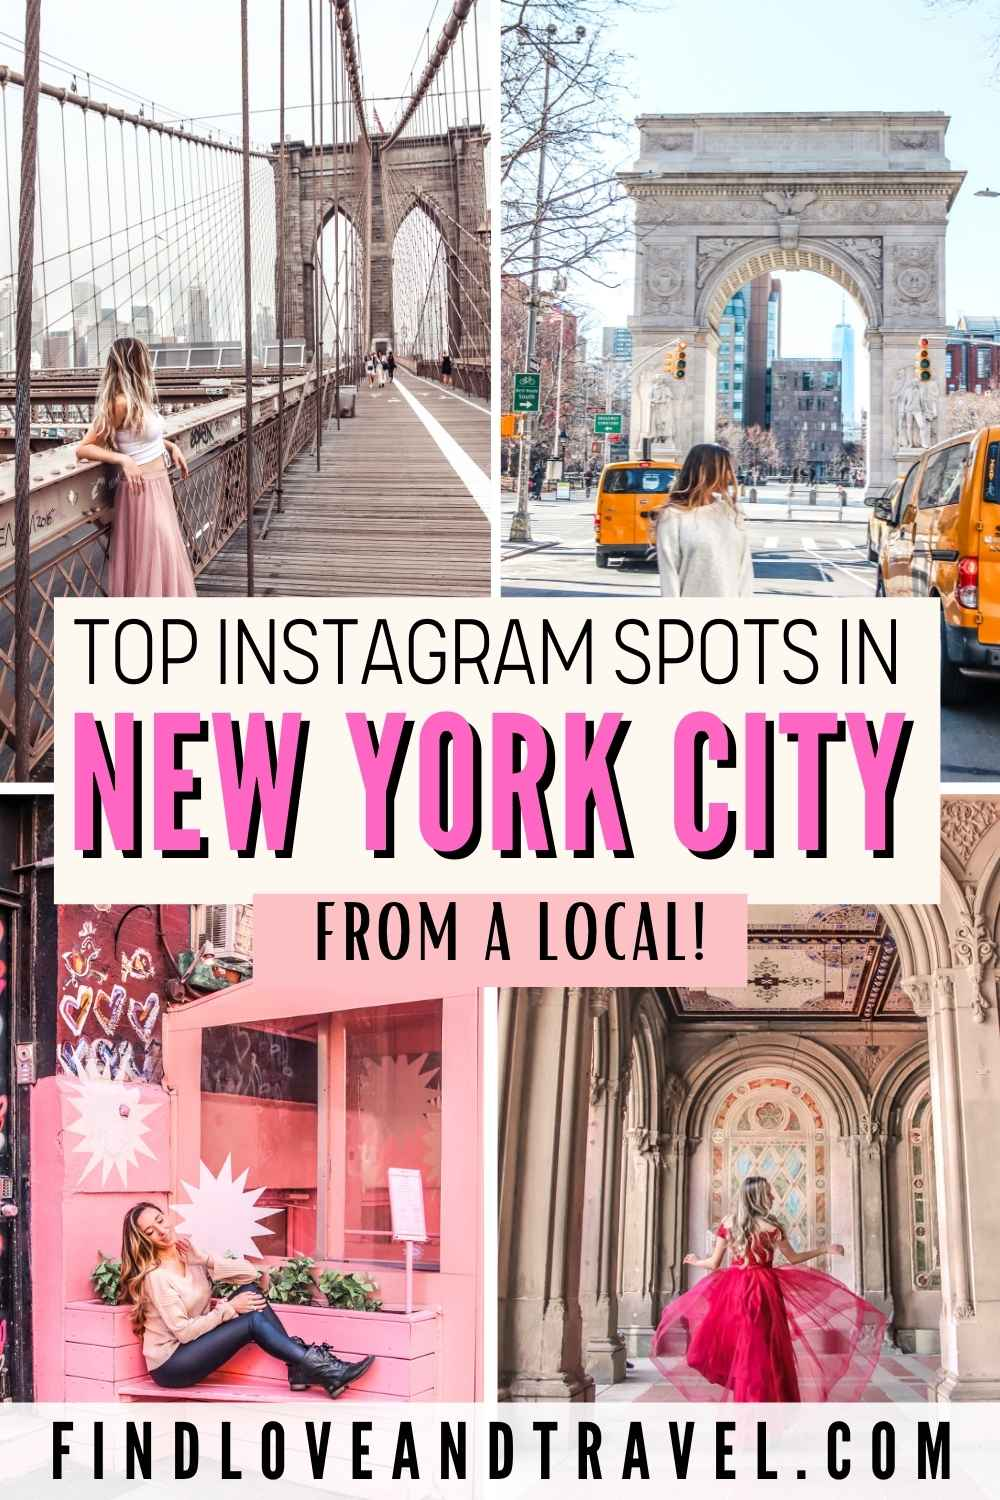 NYC Most Instagrammable Places you must visit while in New York City